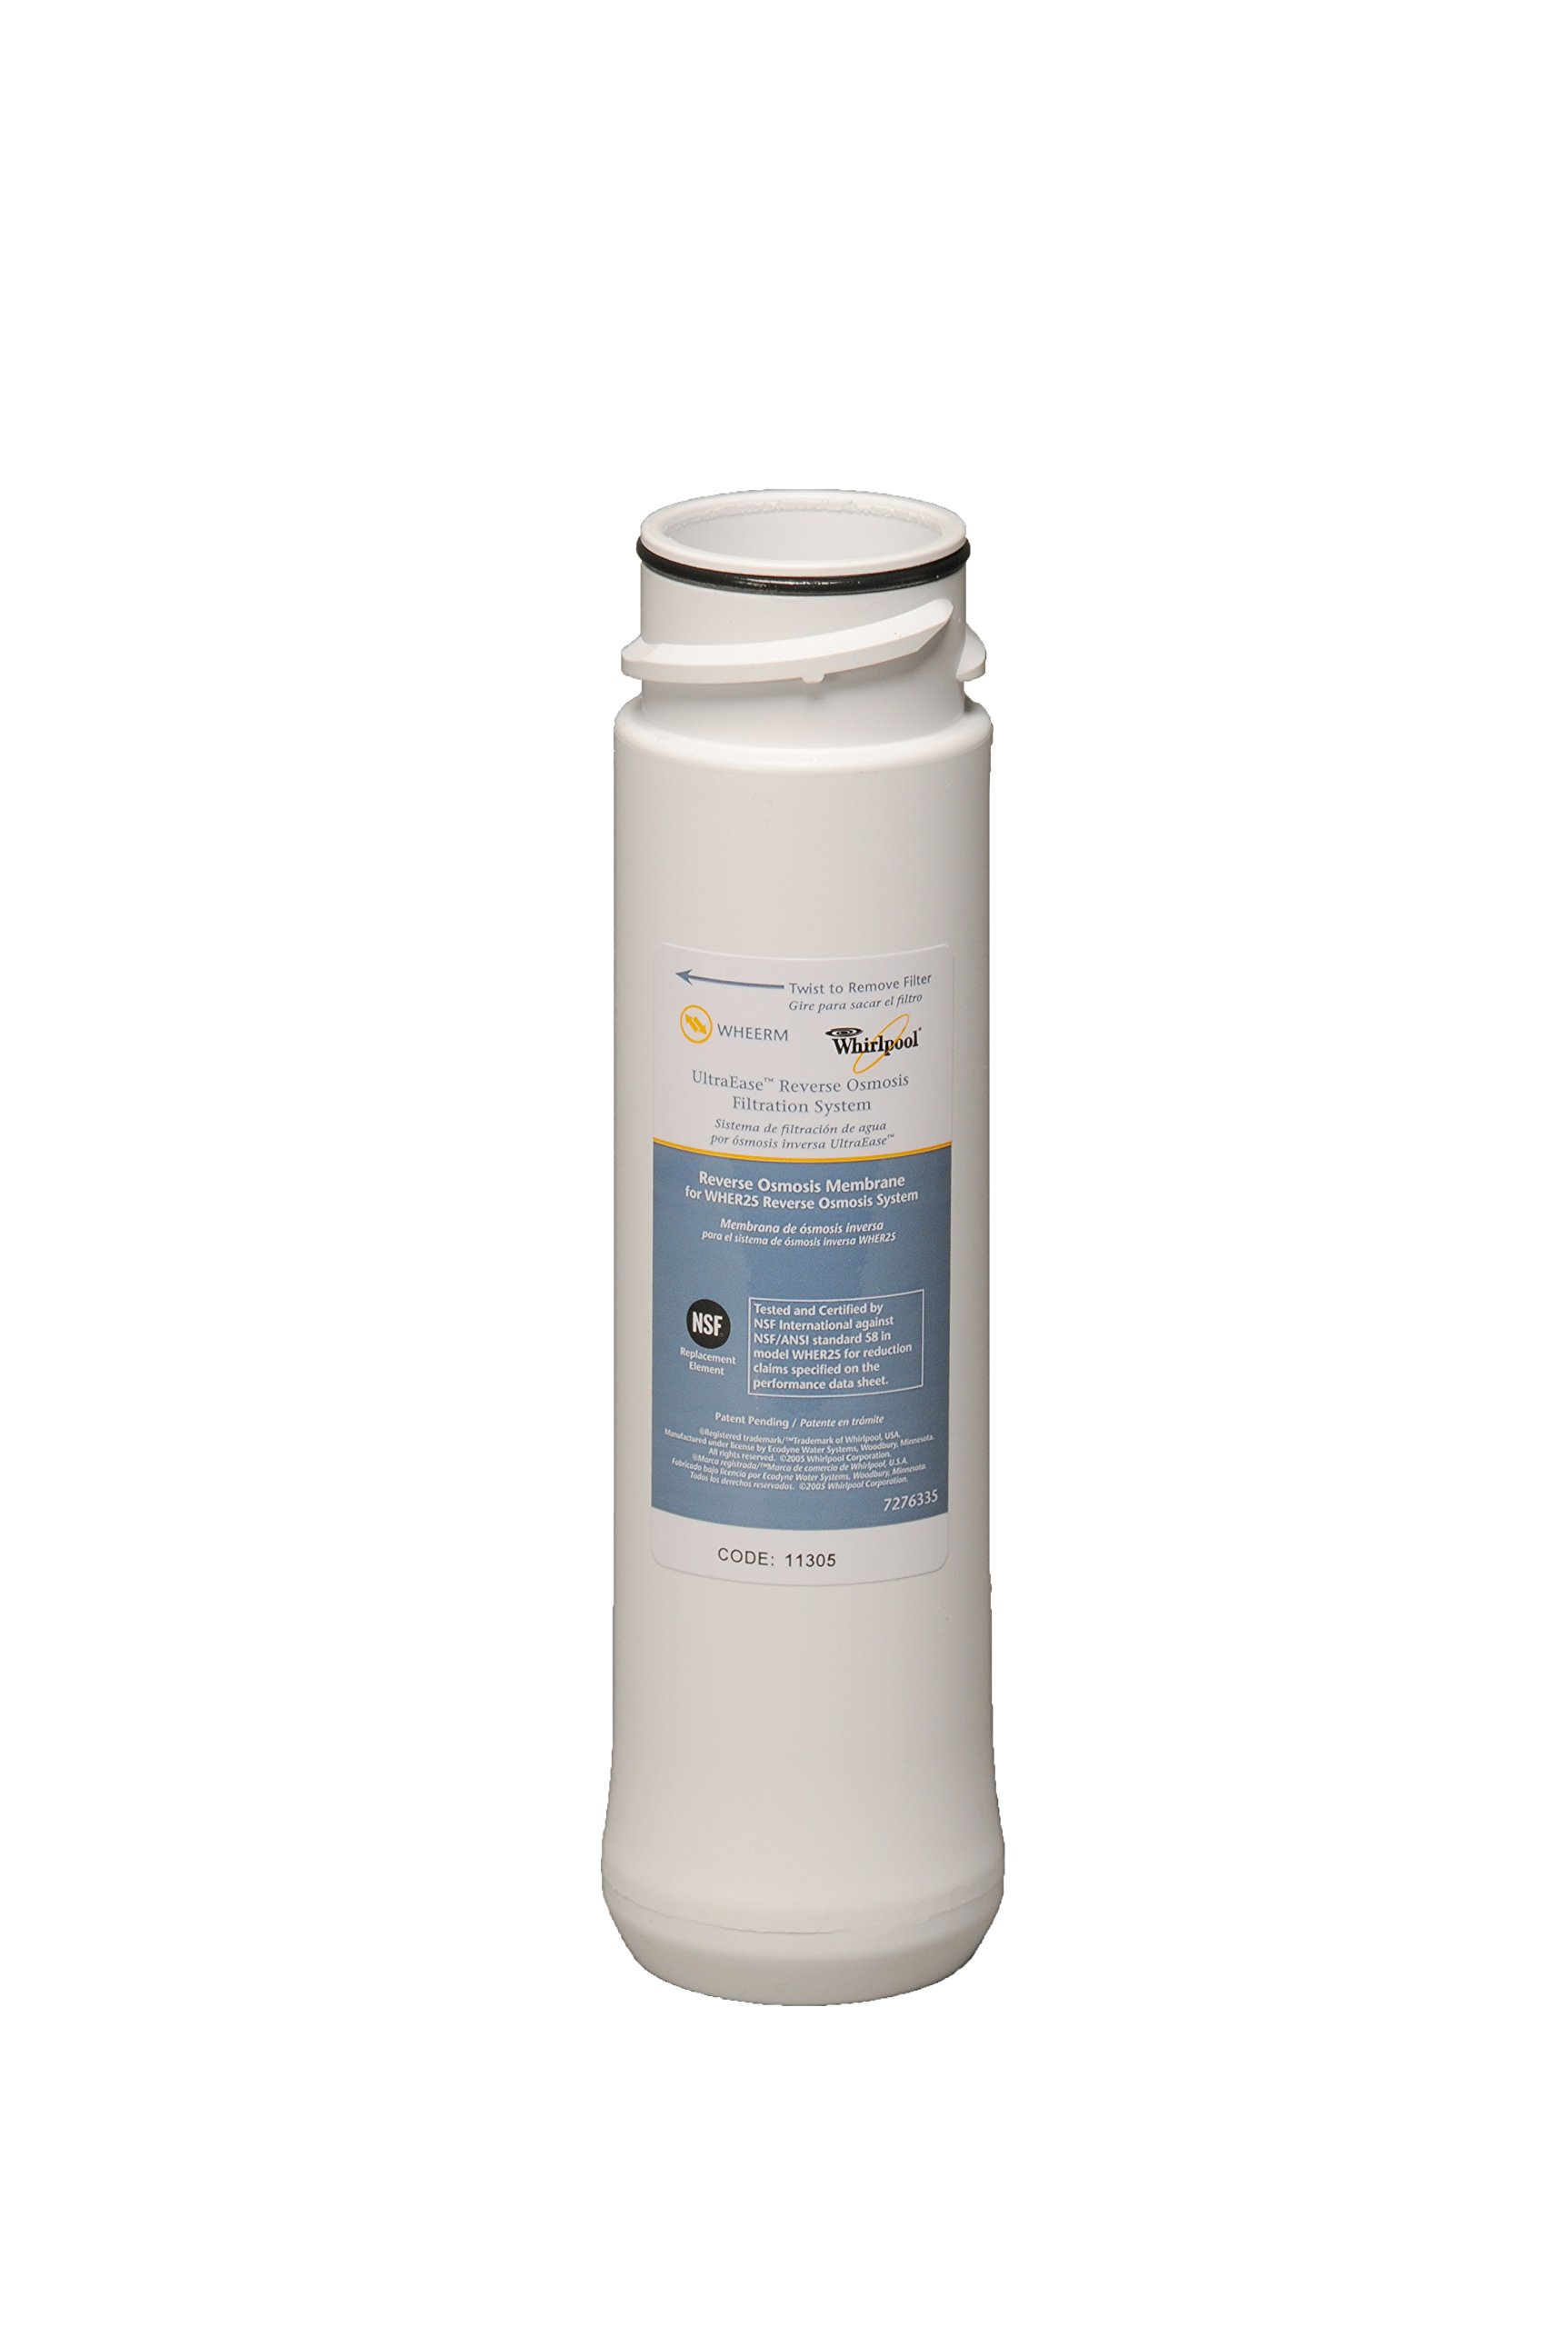 Whirlpool WHER25 Reverse Osmosis Water Filtration System - Built in USA - BEST BUY by Whirlpool